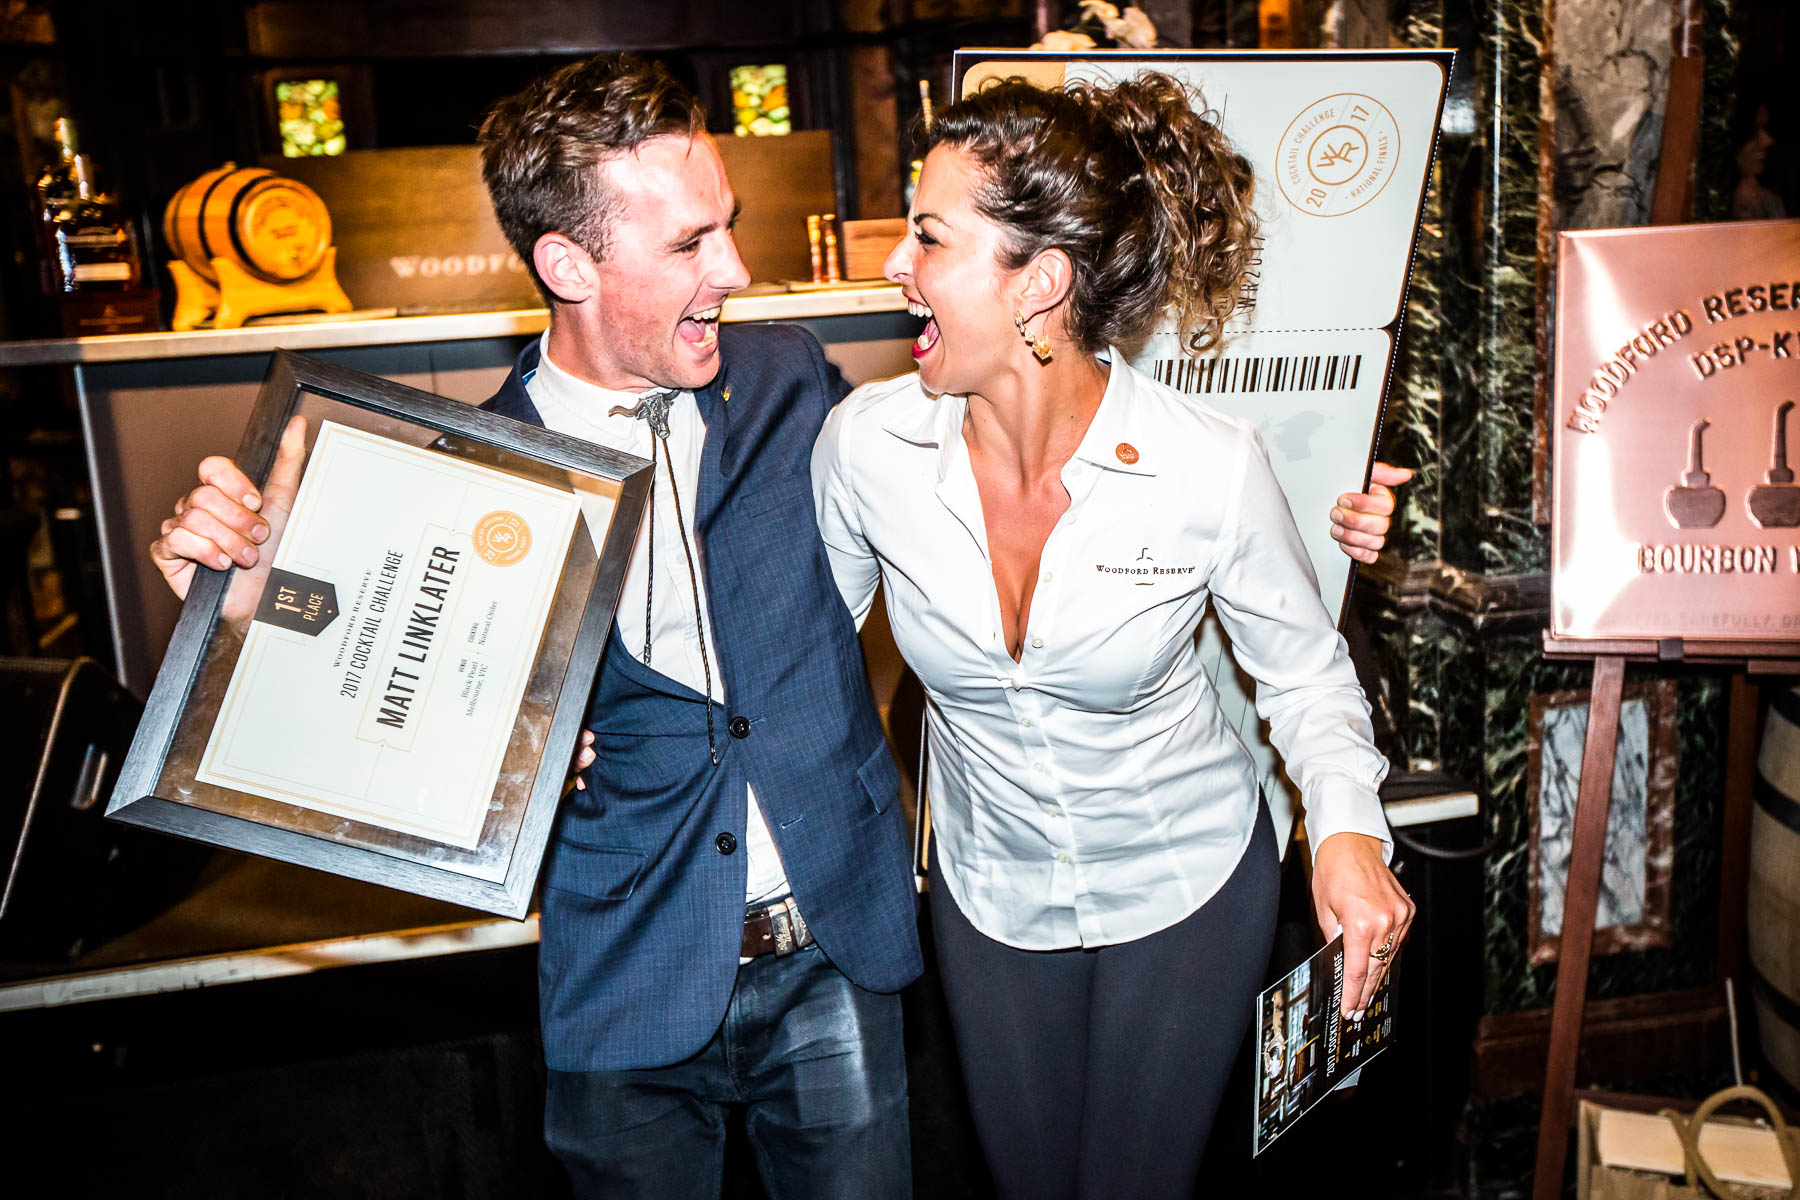 Woodford Reserve Australia Cocktail Competition champion headed to New York in high spirits